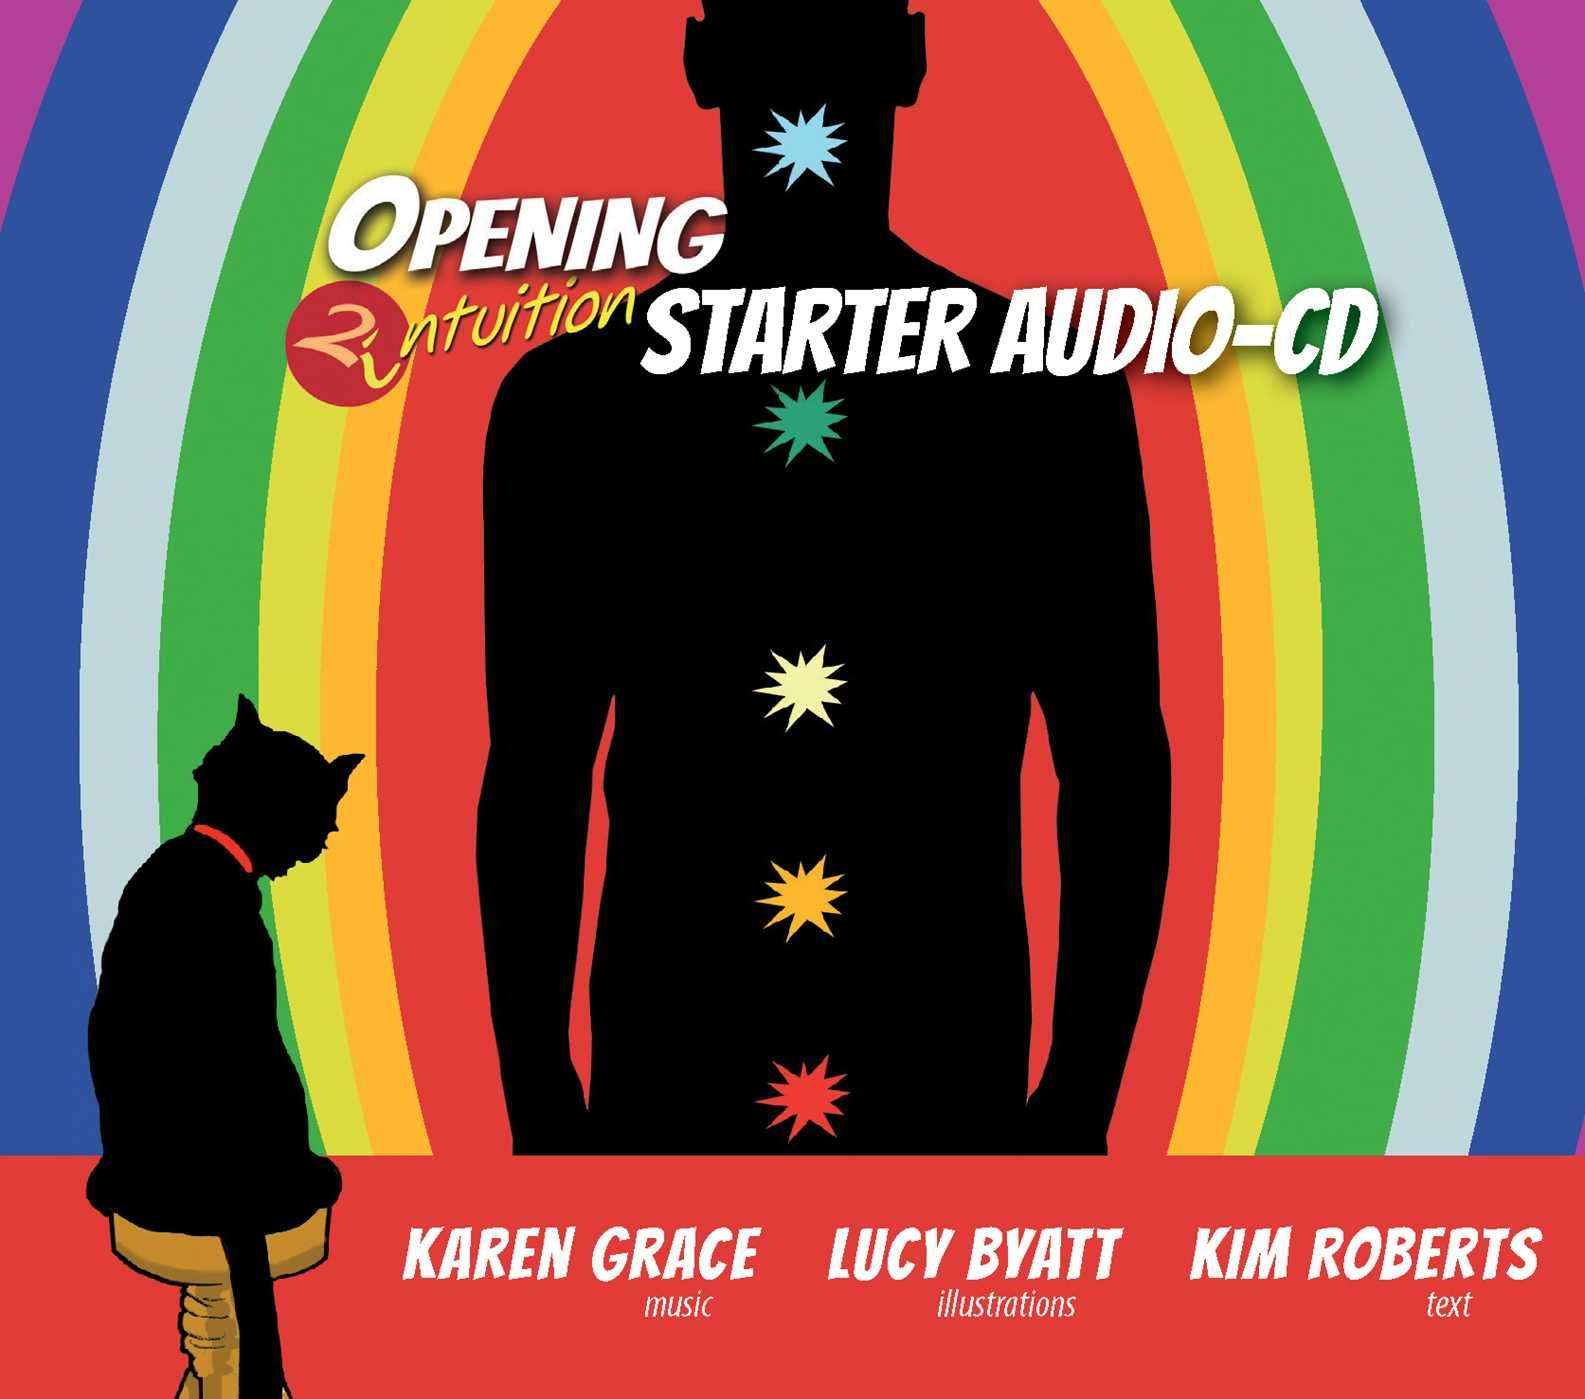 Opening2Intuition Starter Audio-CD